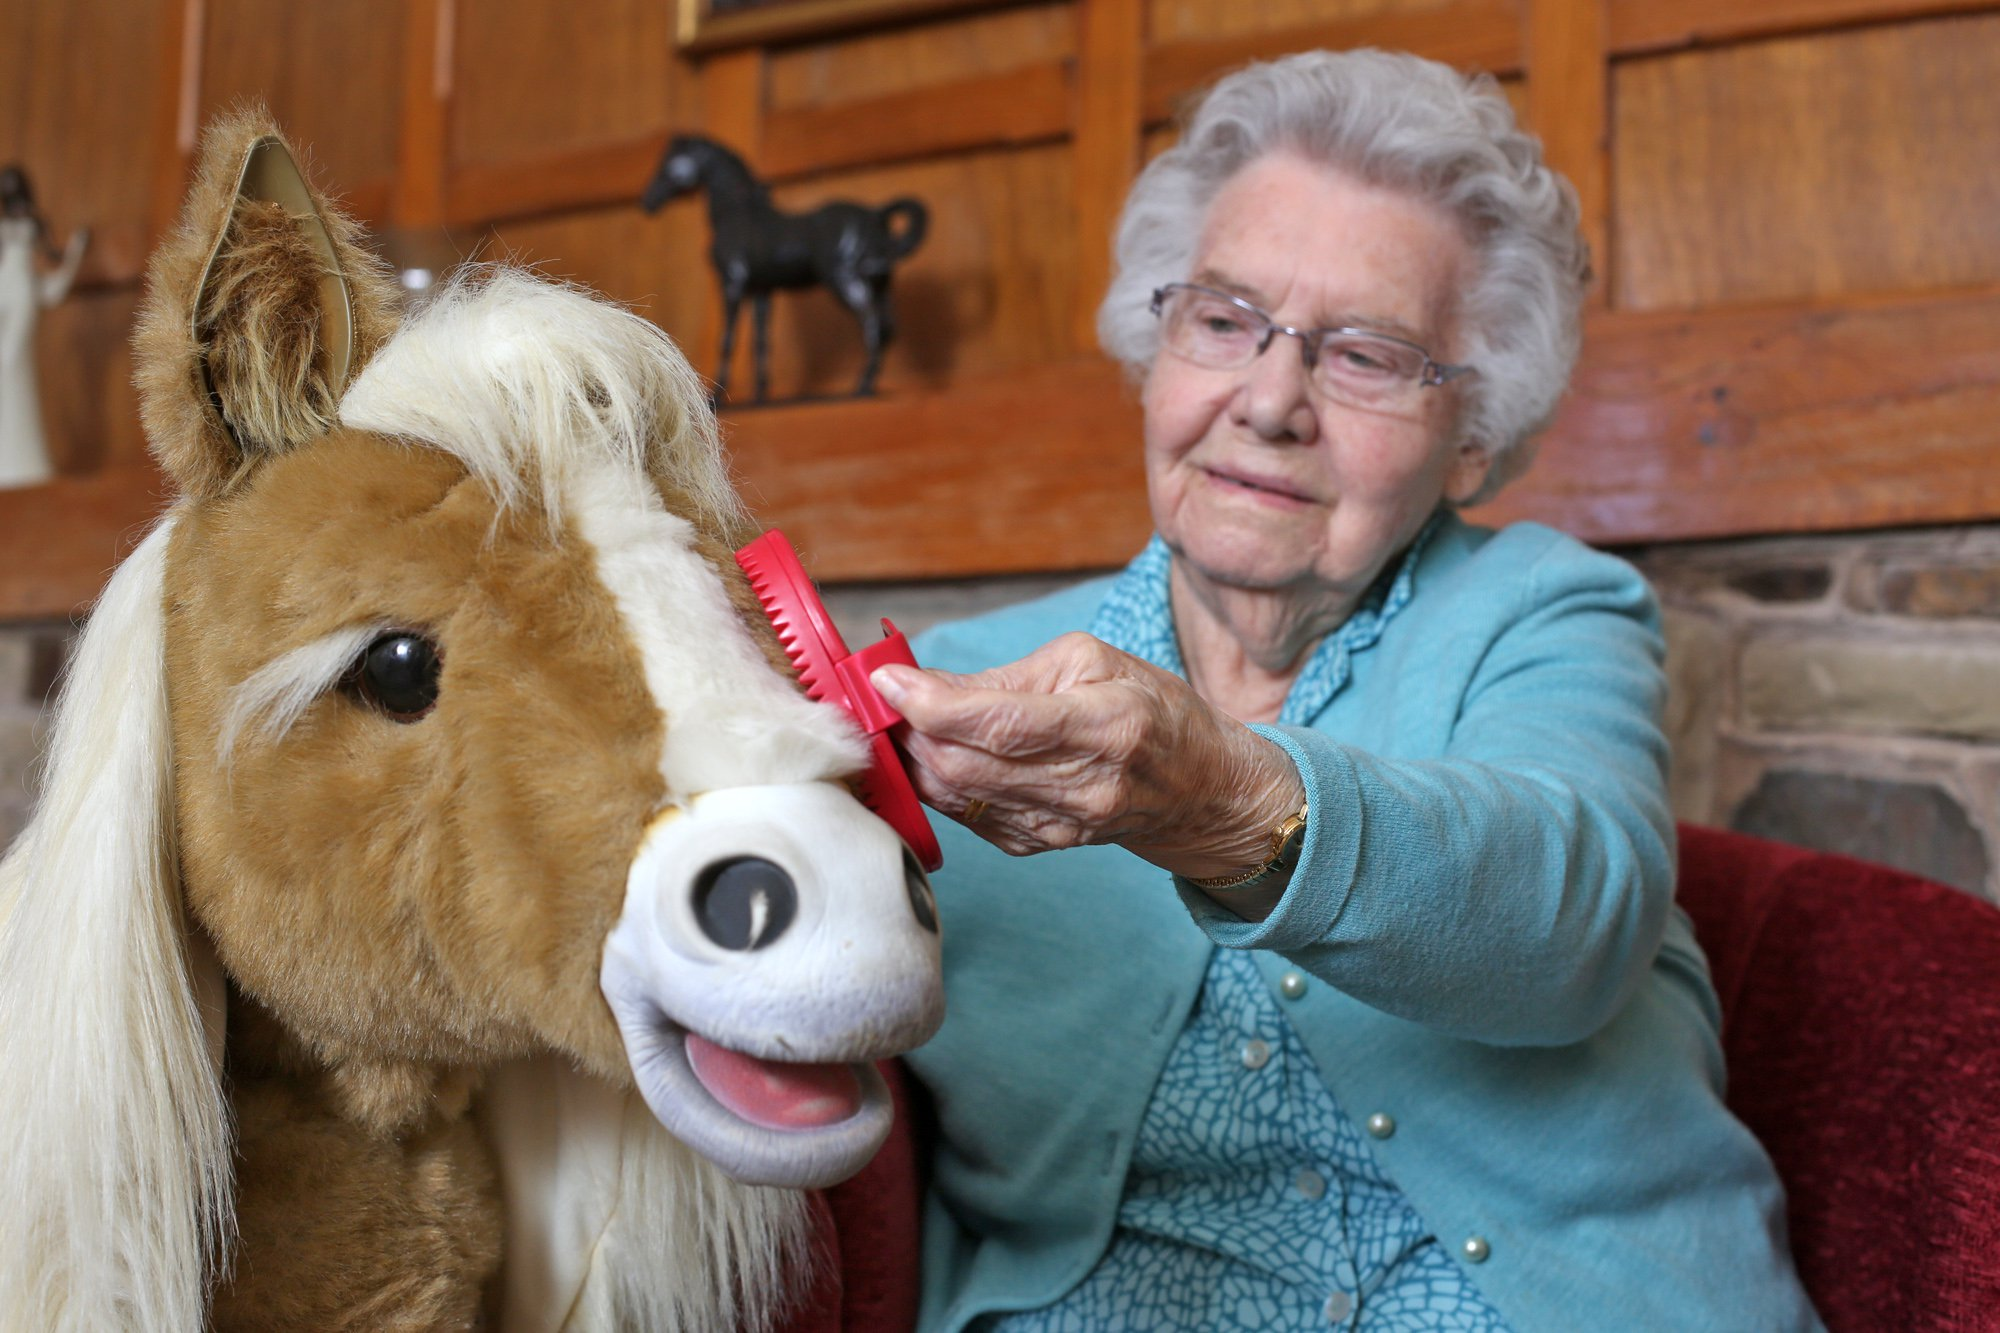 Care home now has robotic horses and dogs to help combat loneliness in elderly residents